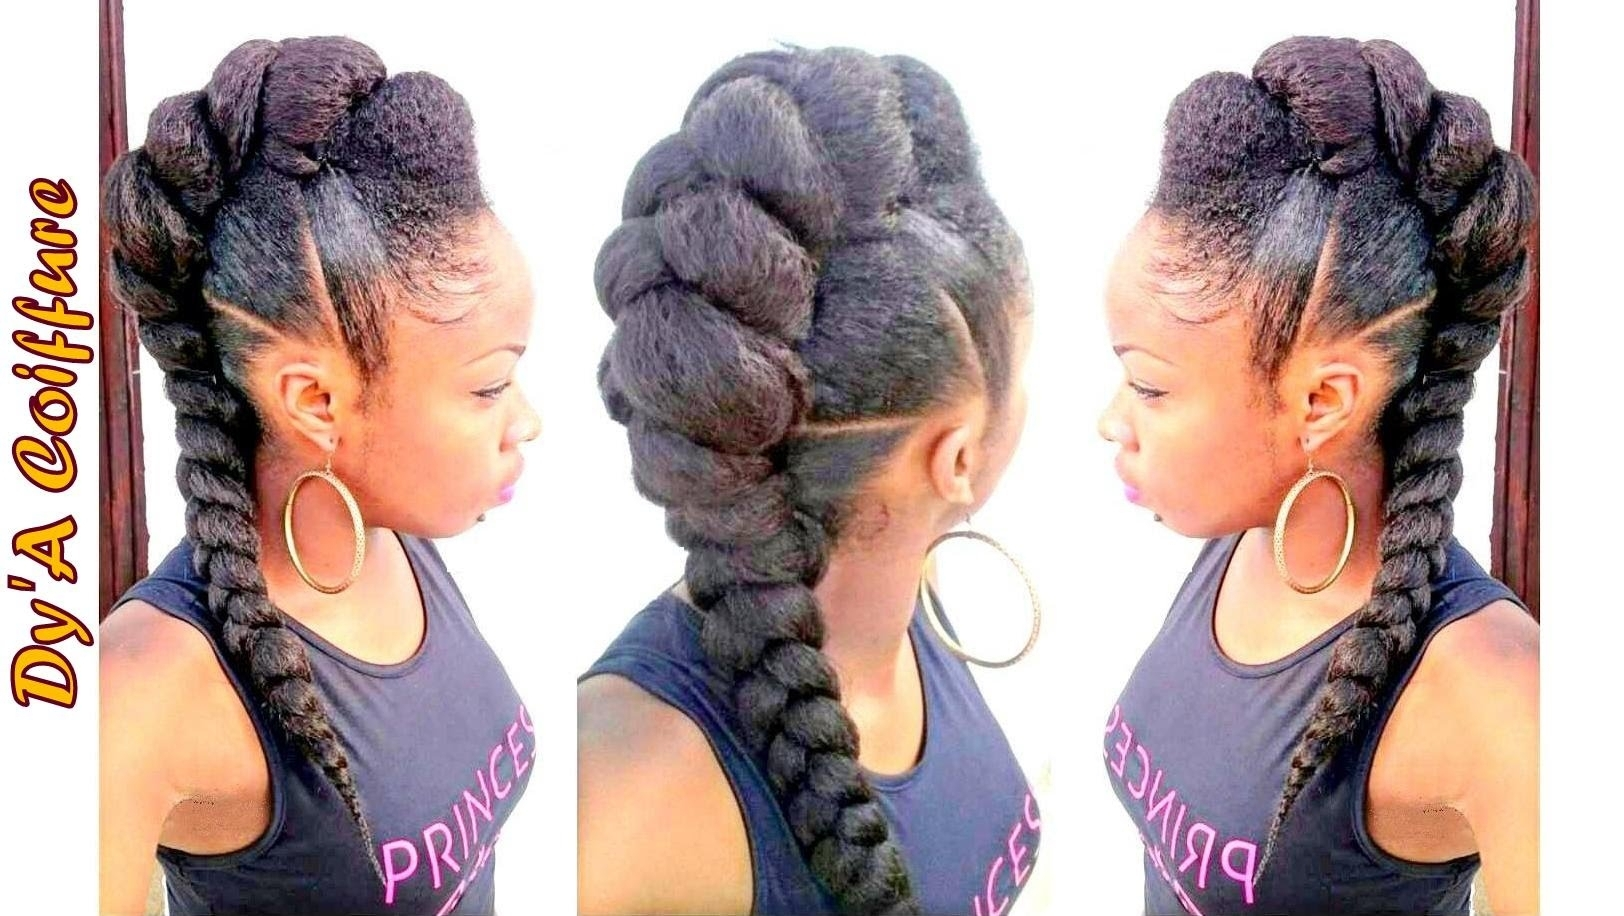 Updo Hairstyles With Braiding Hair Diy ☆ Mohawk / Faux Hawk Style Intended For Updo Hairstyles With Braiding Hair (Gallery 7 of 15)